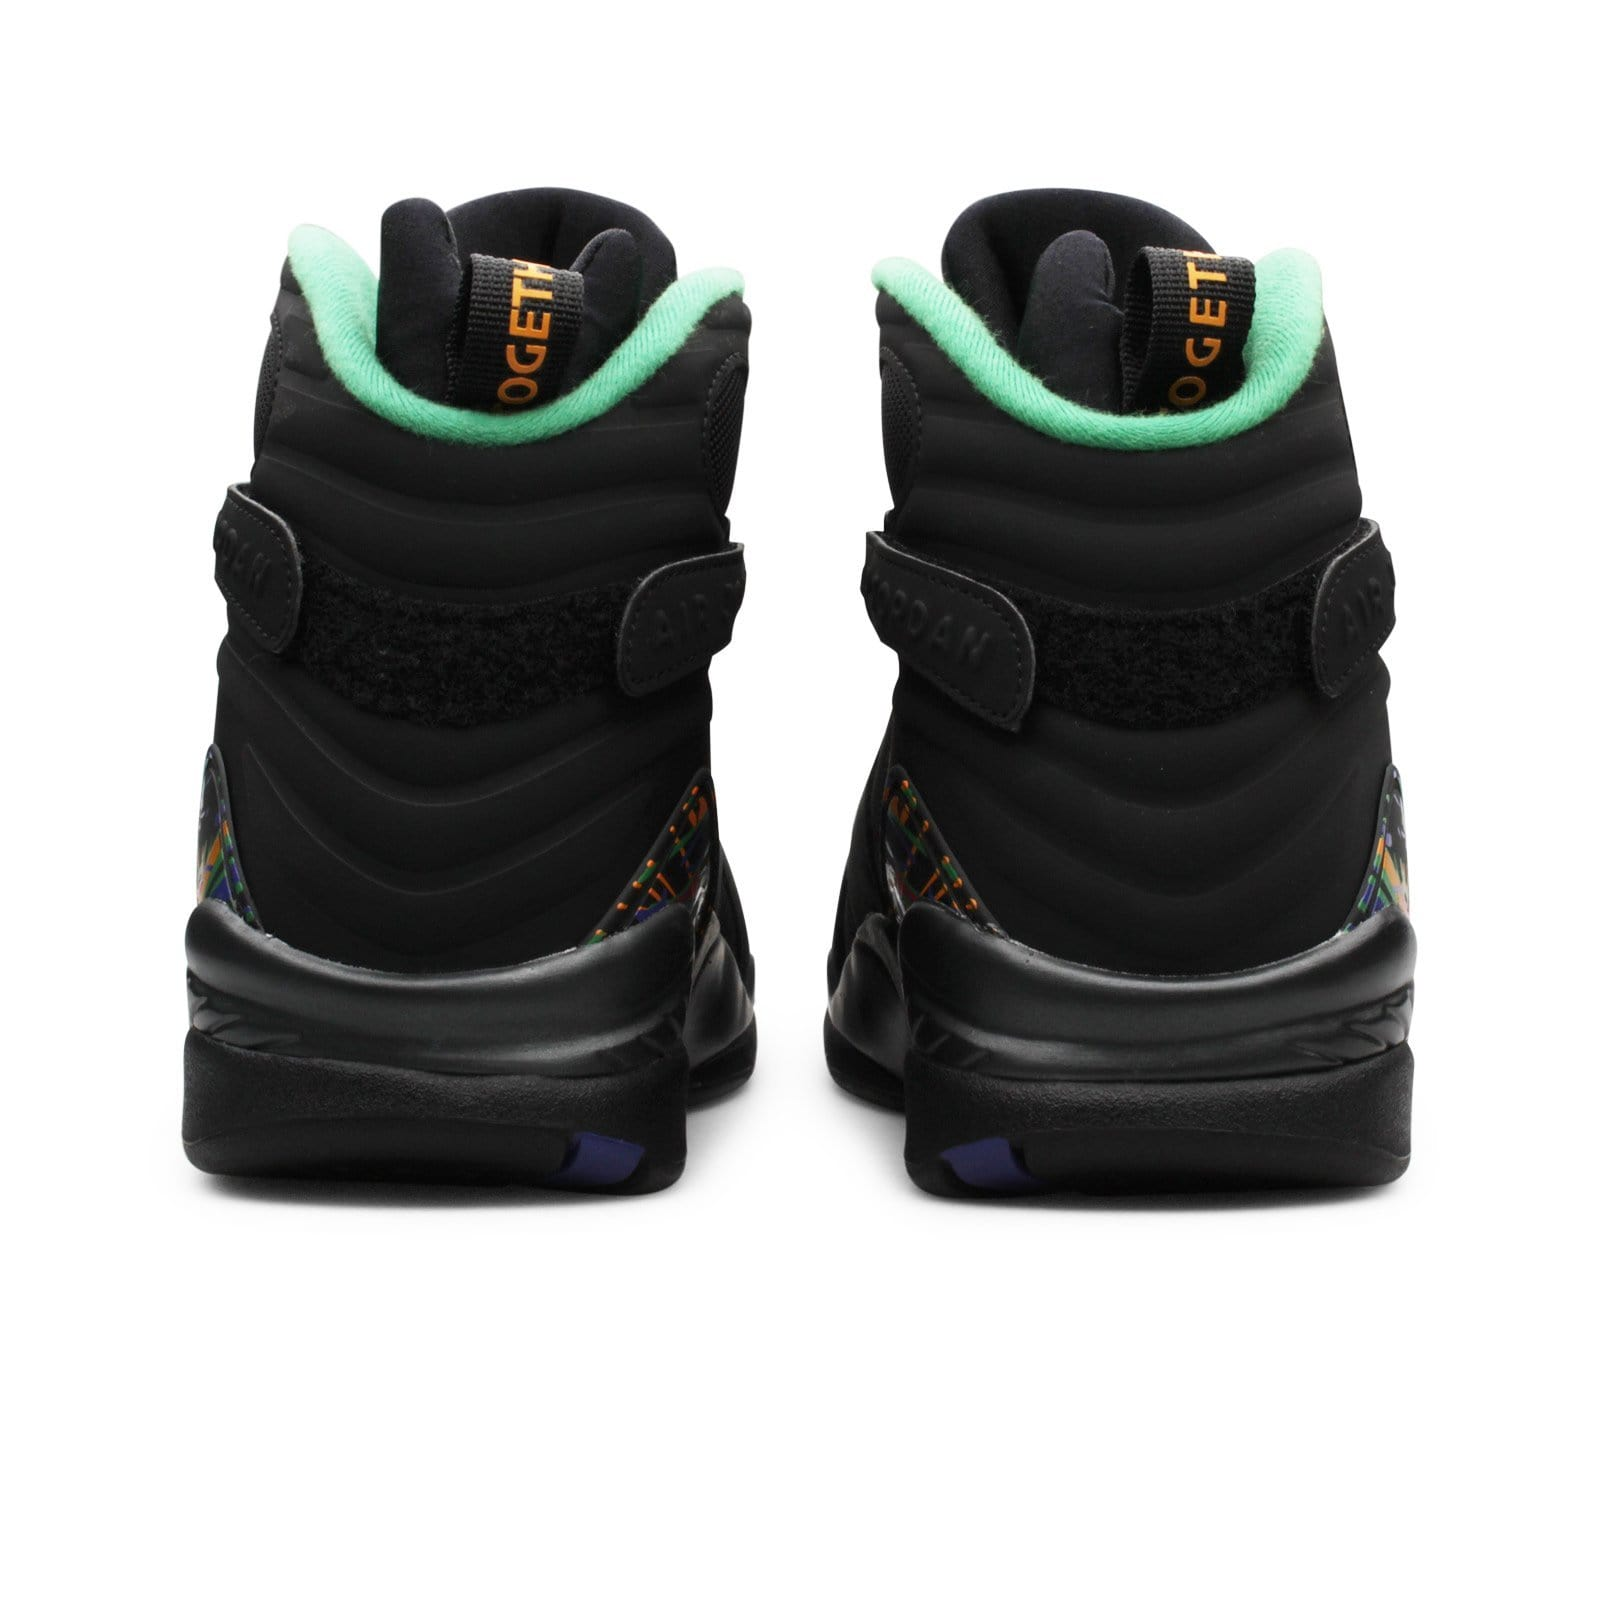 7b8e0eb532b AIR JORDAN 8 RETRO (BLACK LIGHT CONCORD-ALOE VERDE)  305381-004 ...